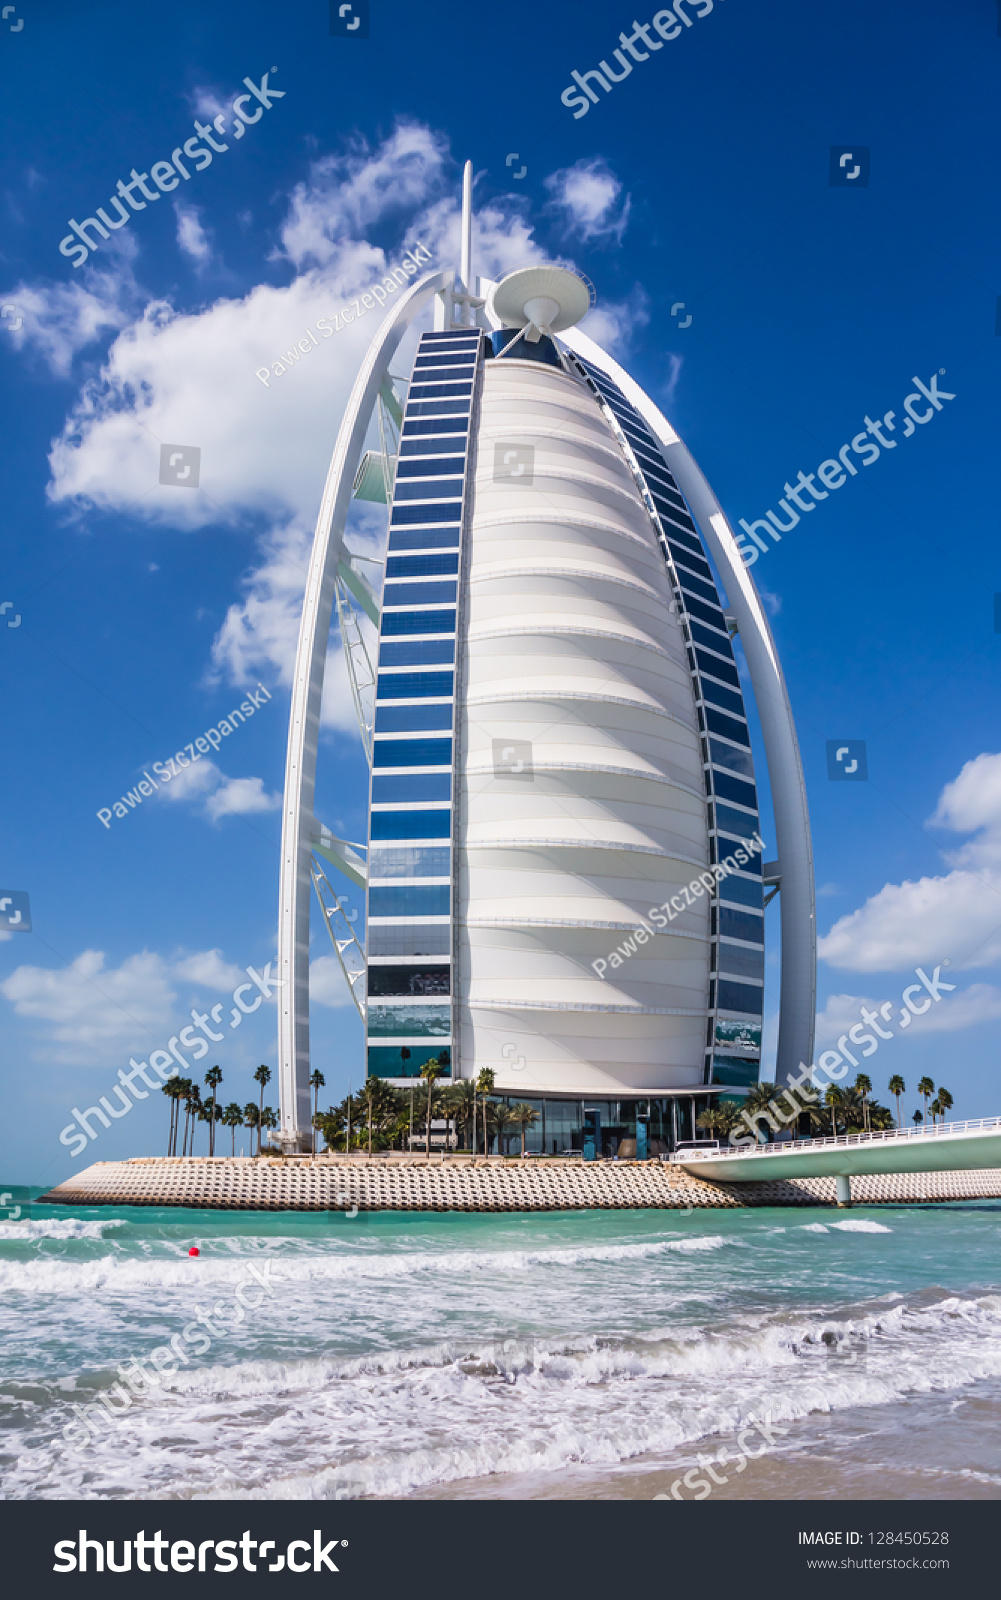 Dubai uae february 03 burj al arab considered the for Burj al arab the most luxurious hotel